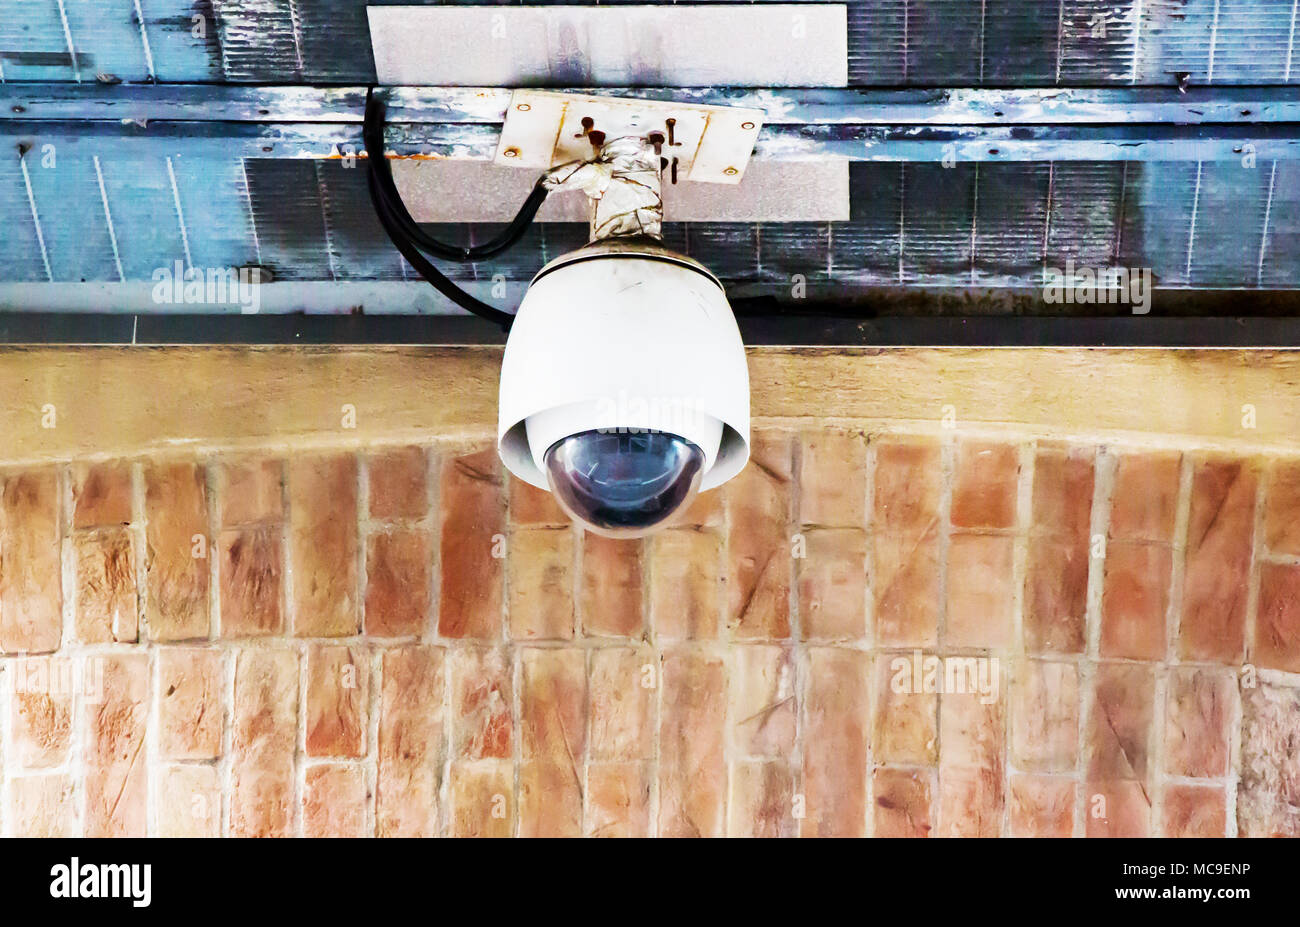 Security CCTV Camera on the old wall. Stock Photo